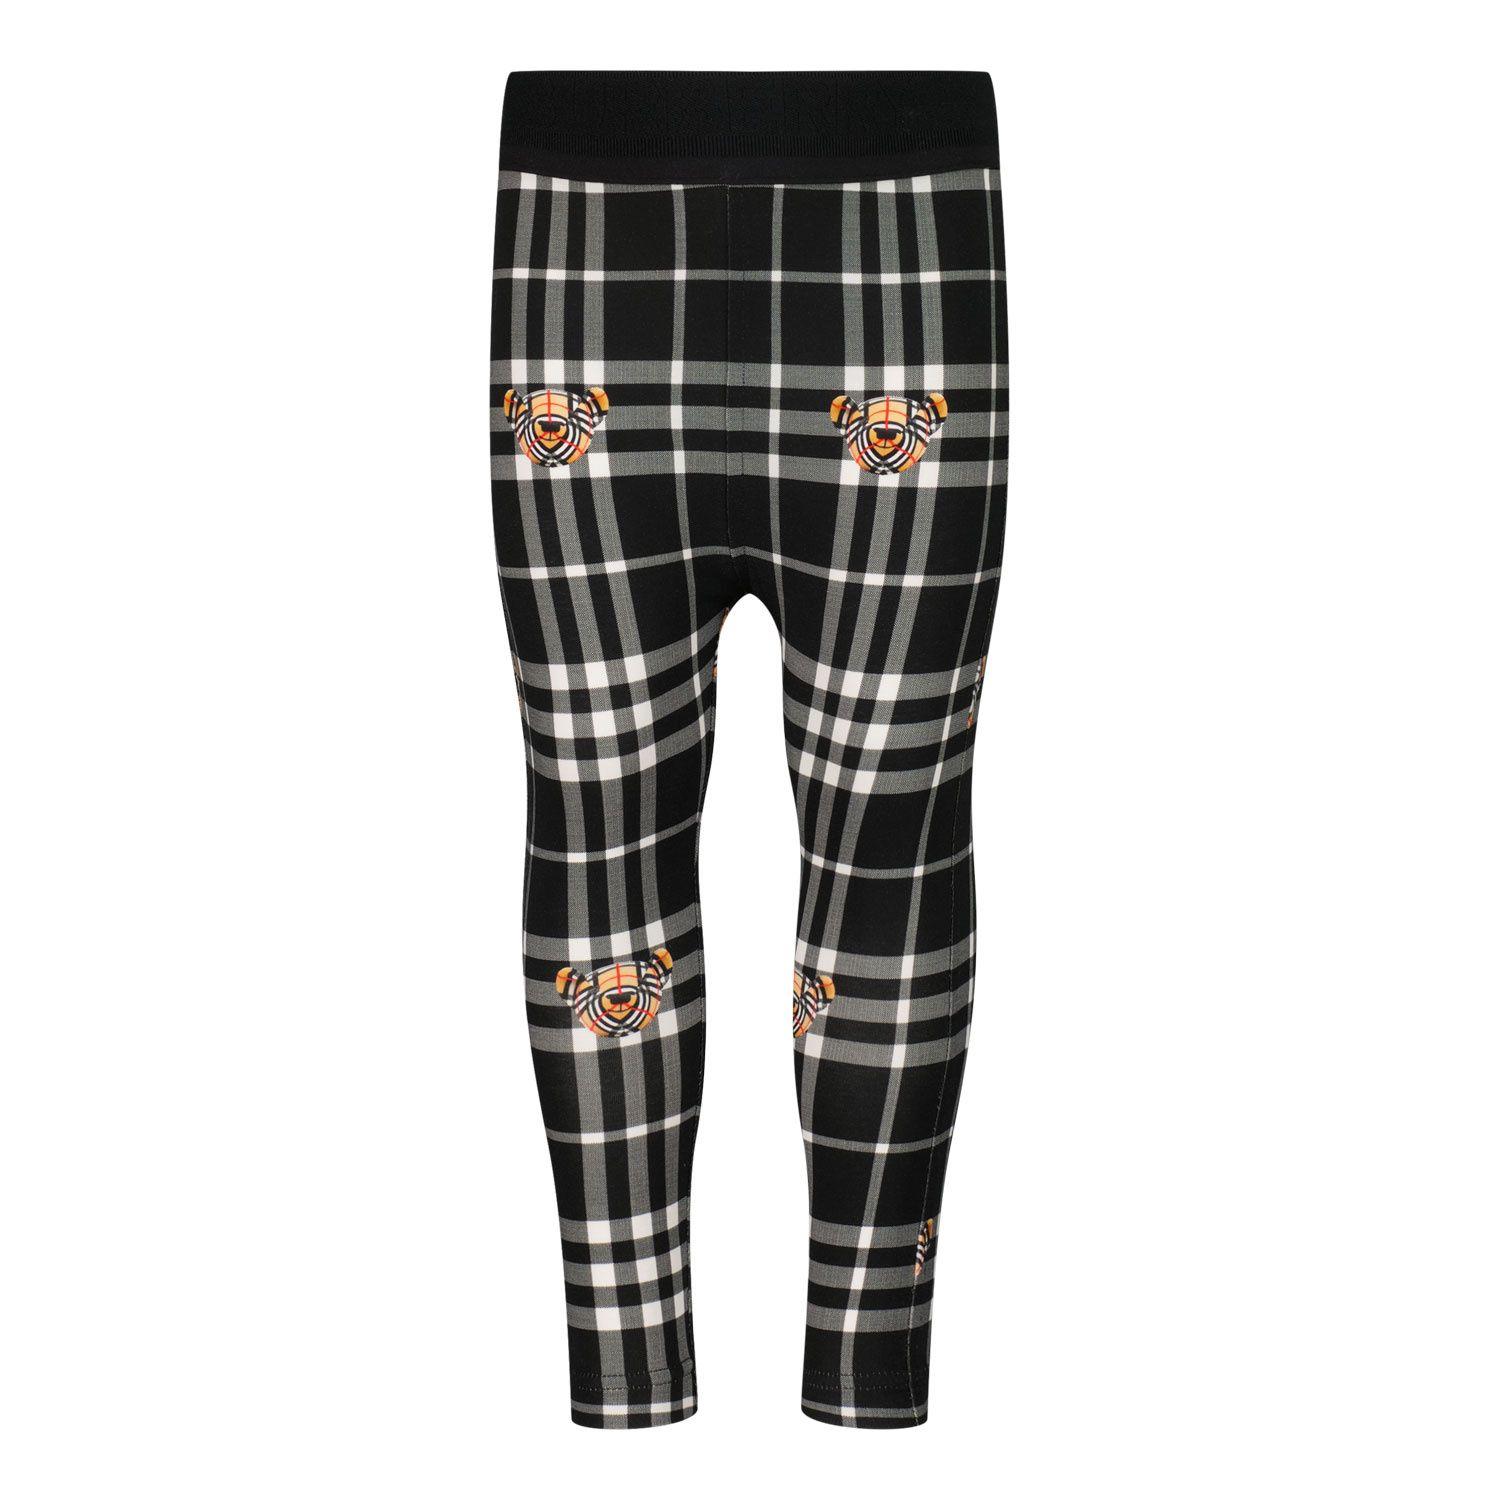 Picture of Burberry 8041293 baby legging black